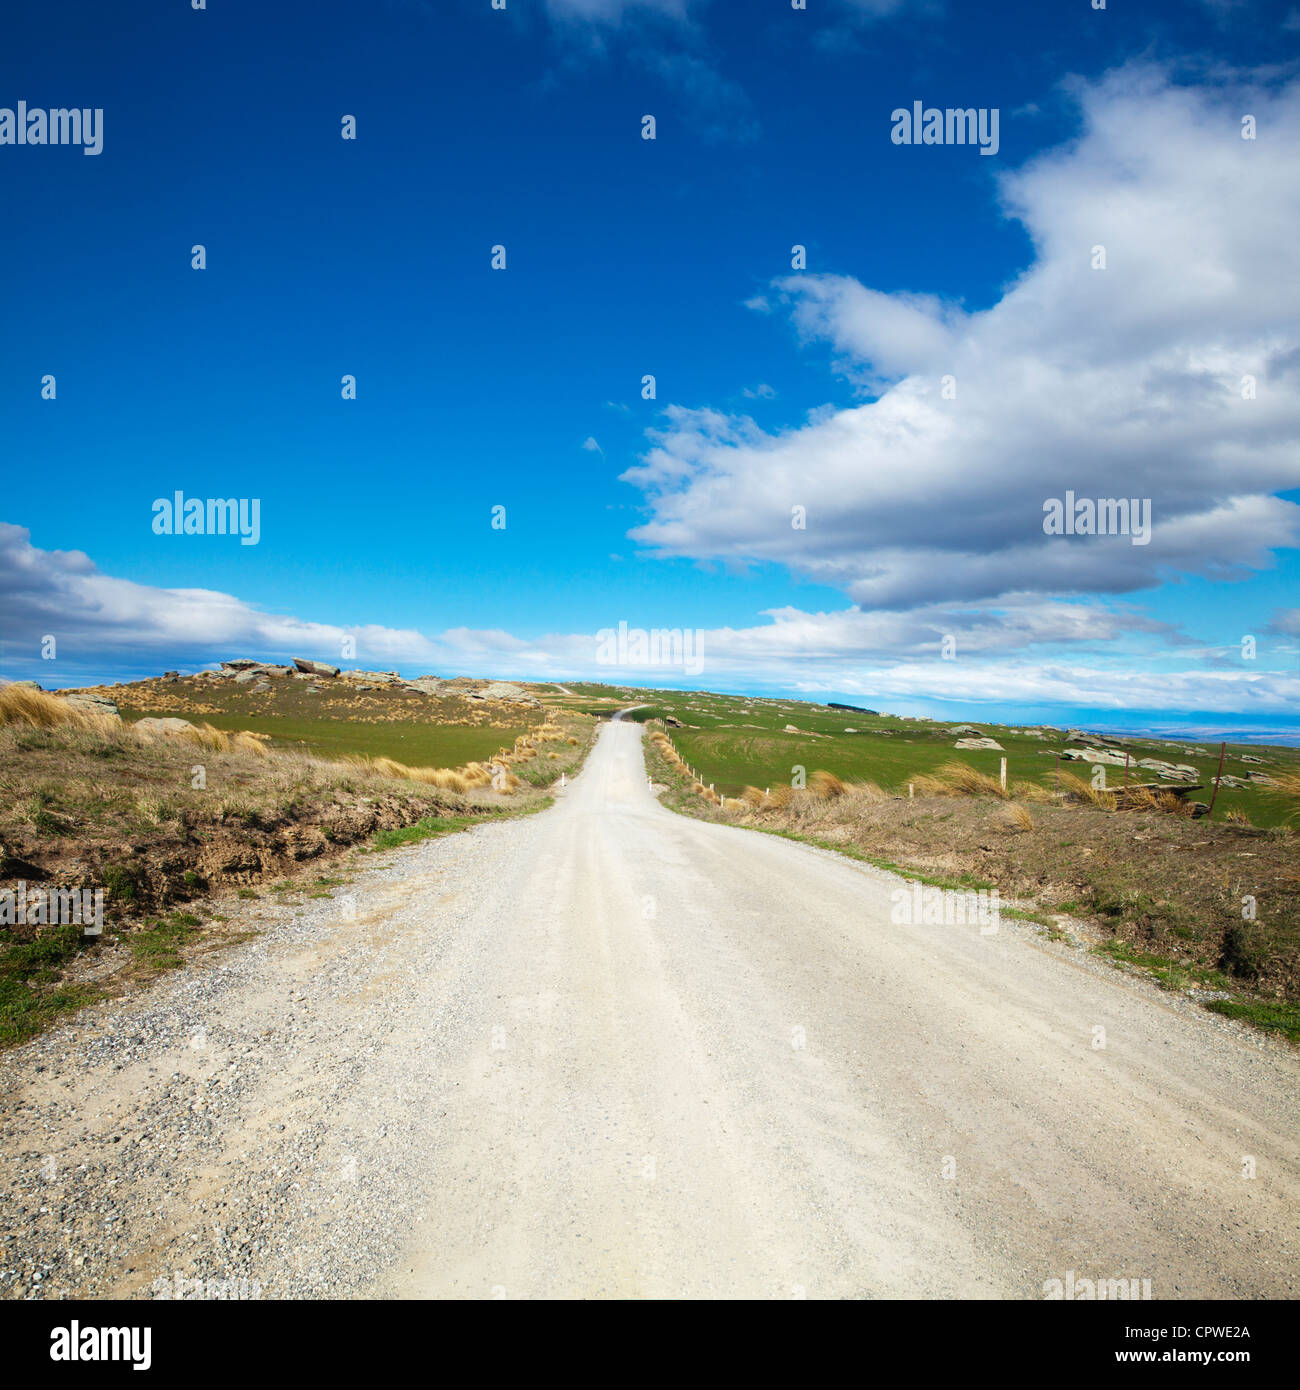 Country road in the high country of Central Otago, New Zealand. - Stock Image